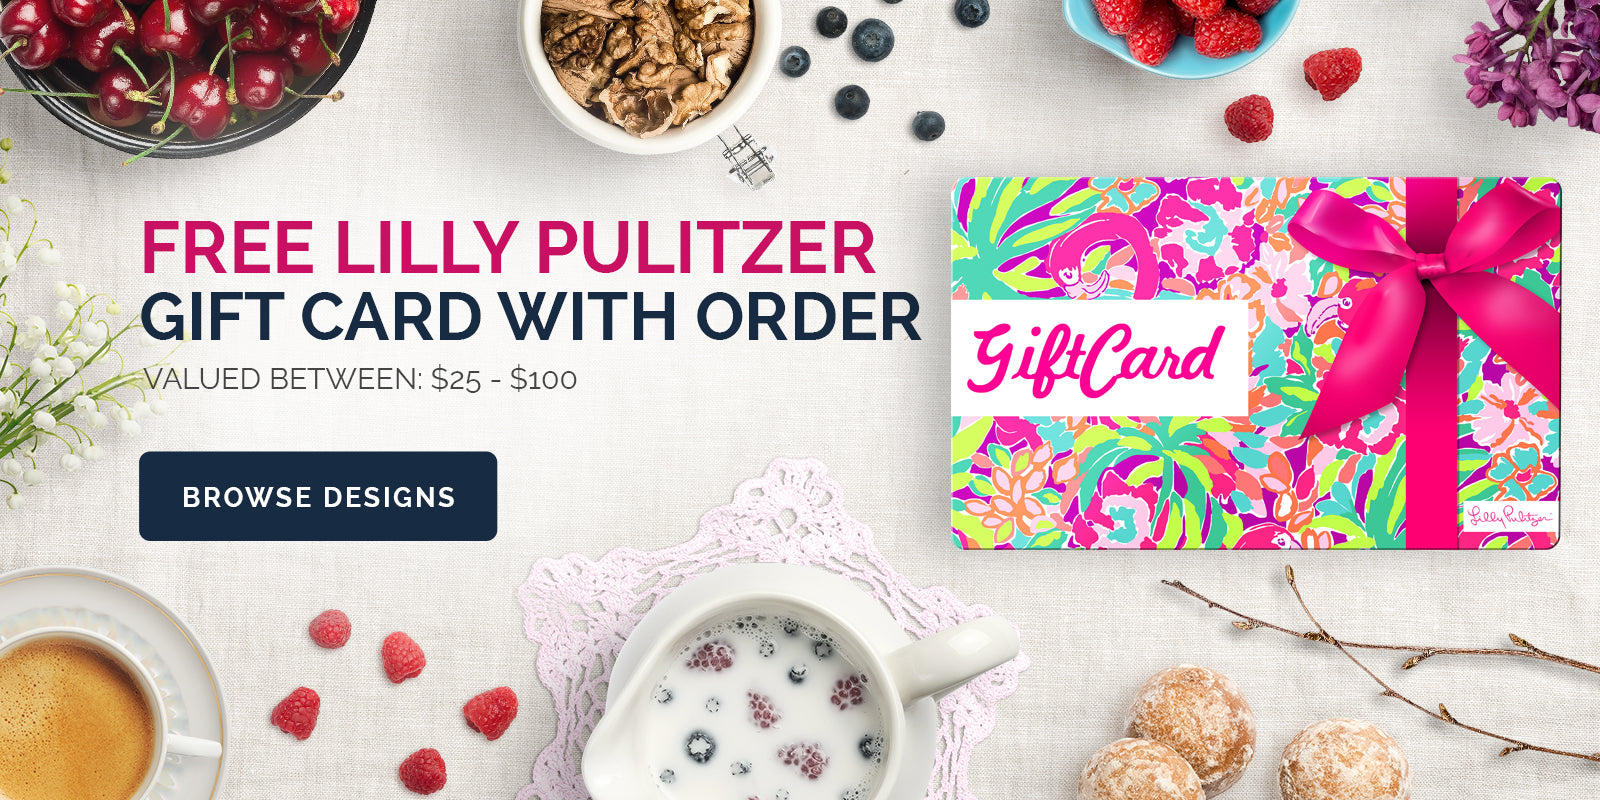 Free Lilly Pulitzer Gift Card